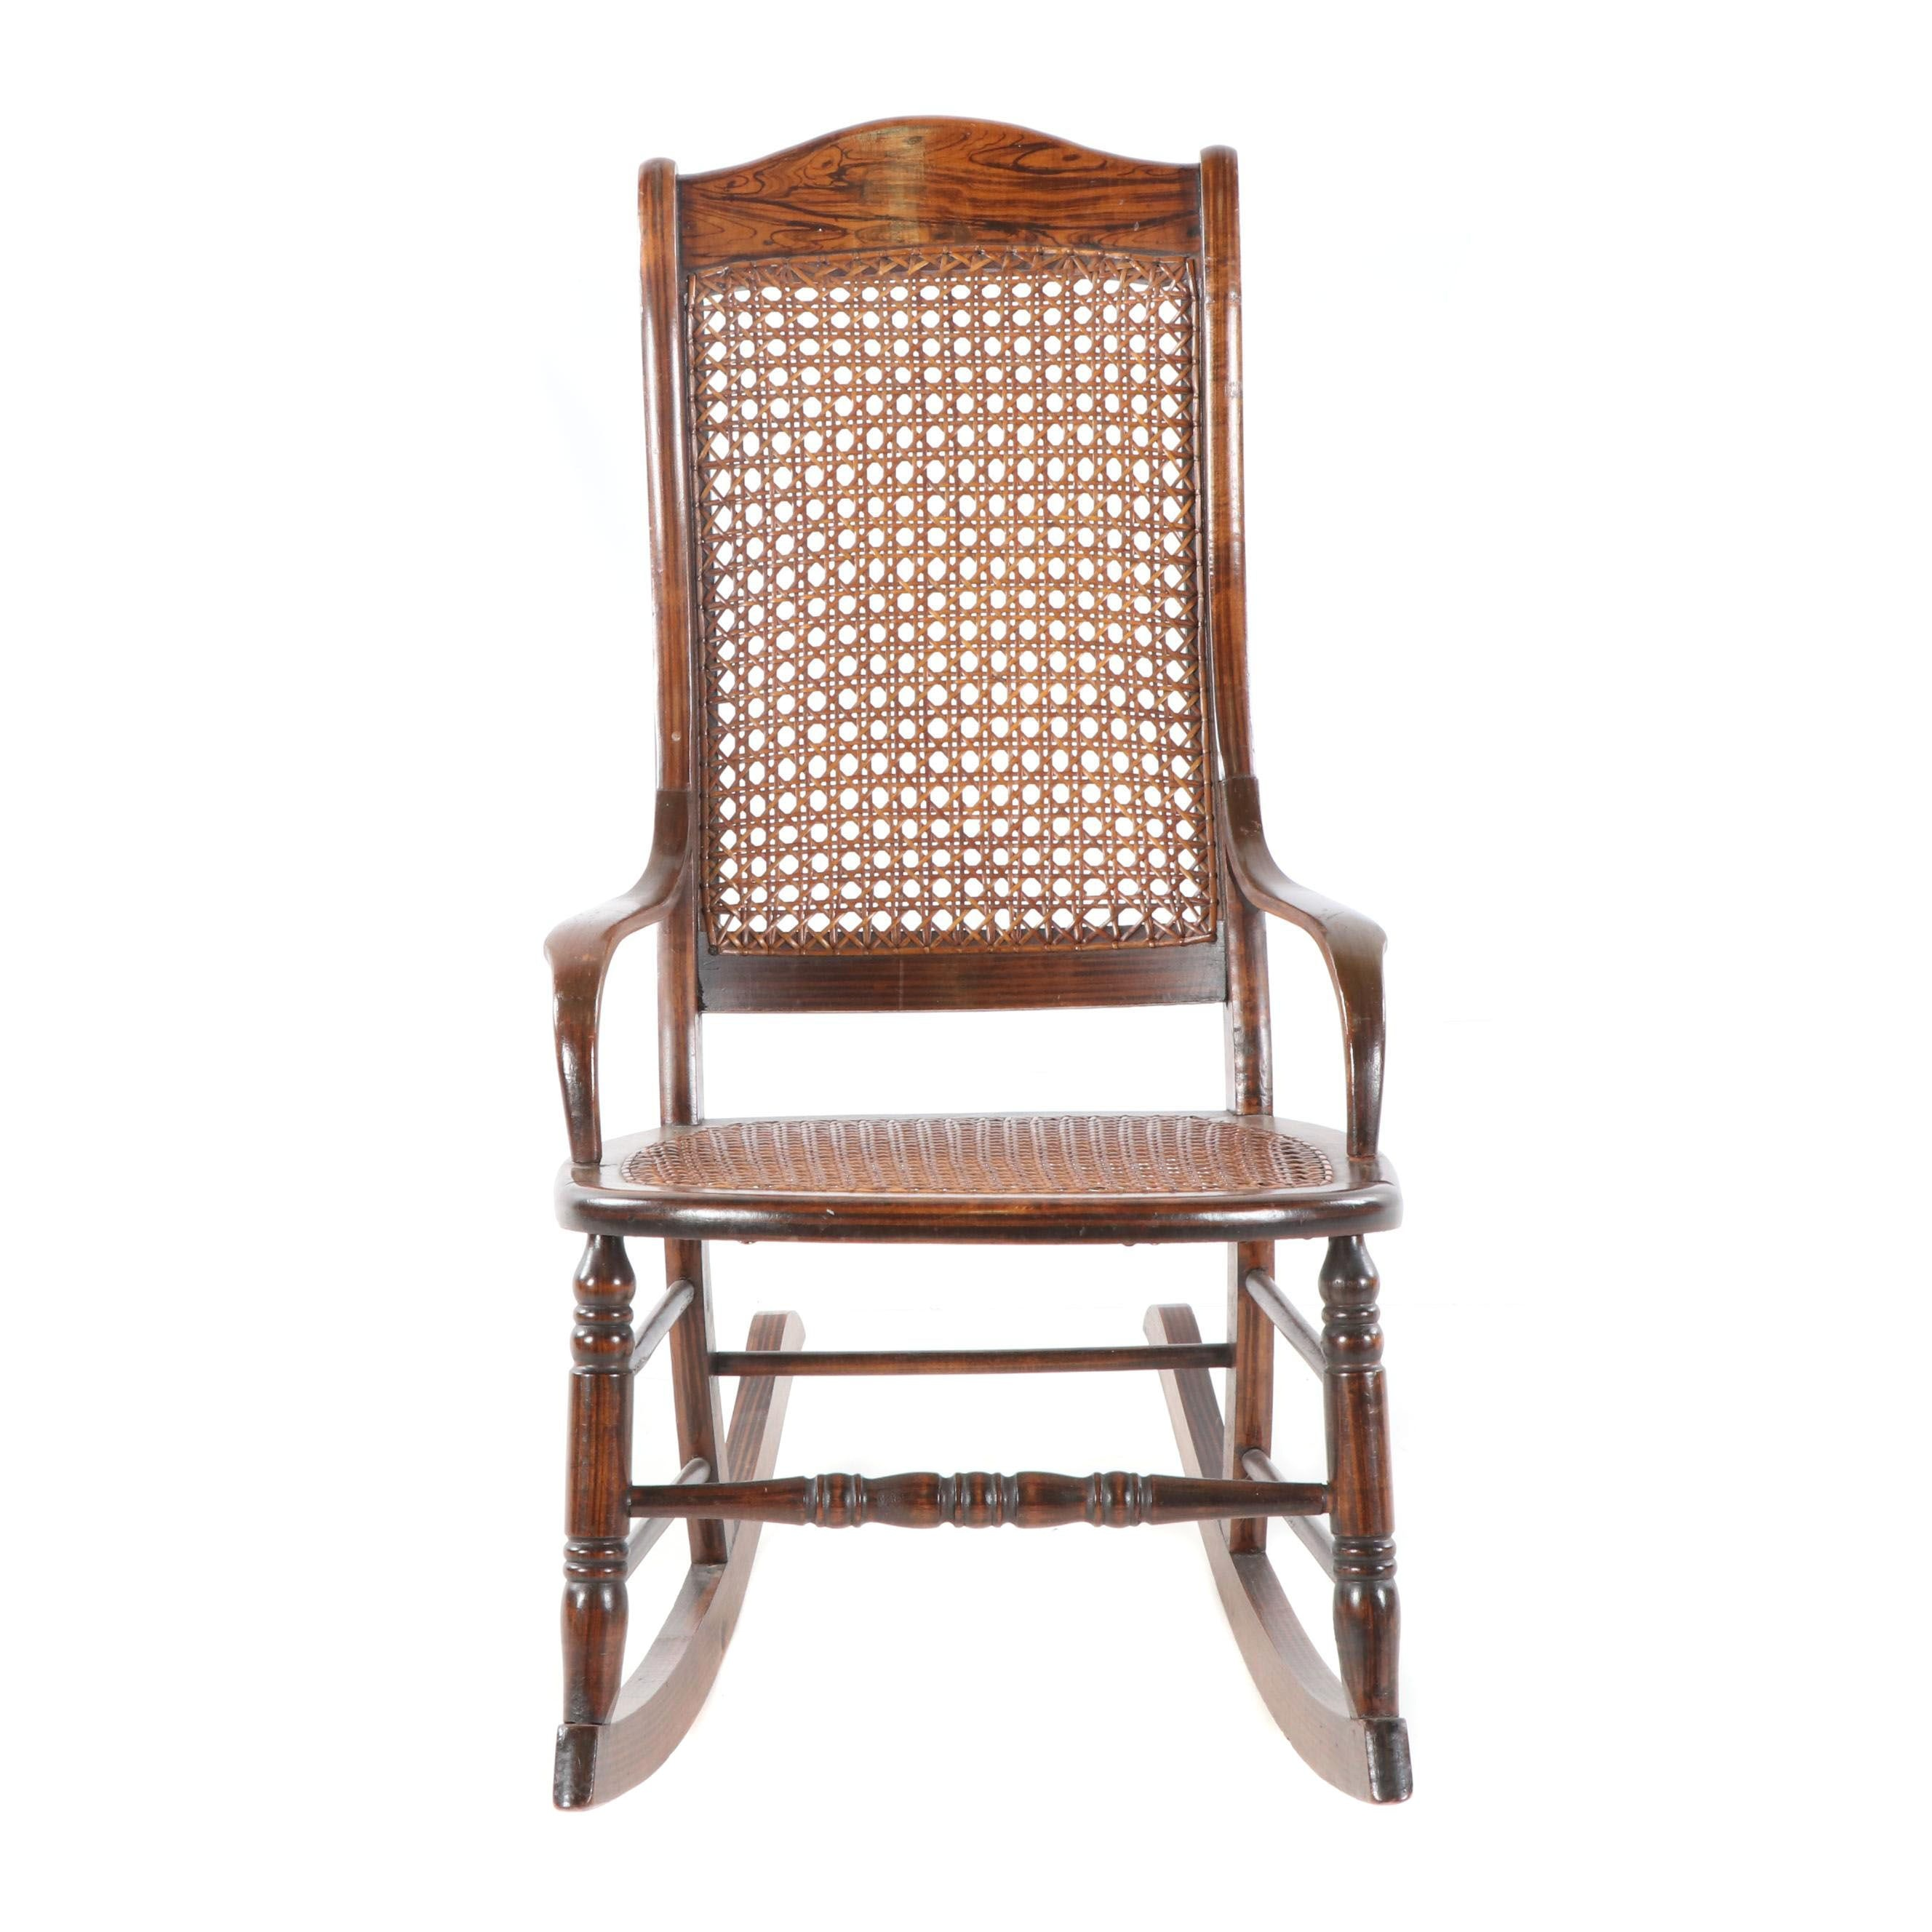 Stained Ash Cane Seat Rocking Chair, 20th Century